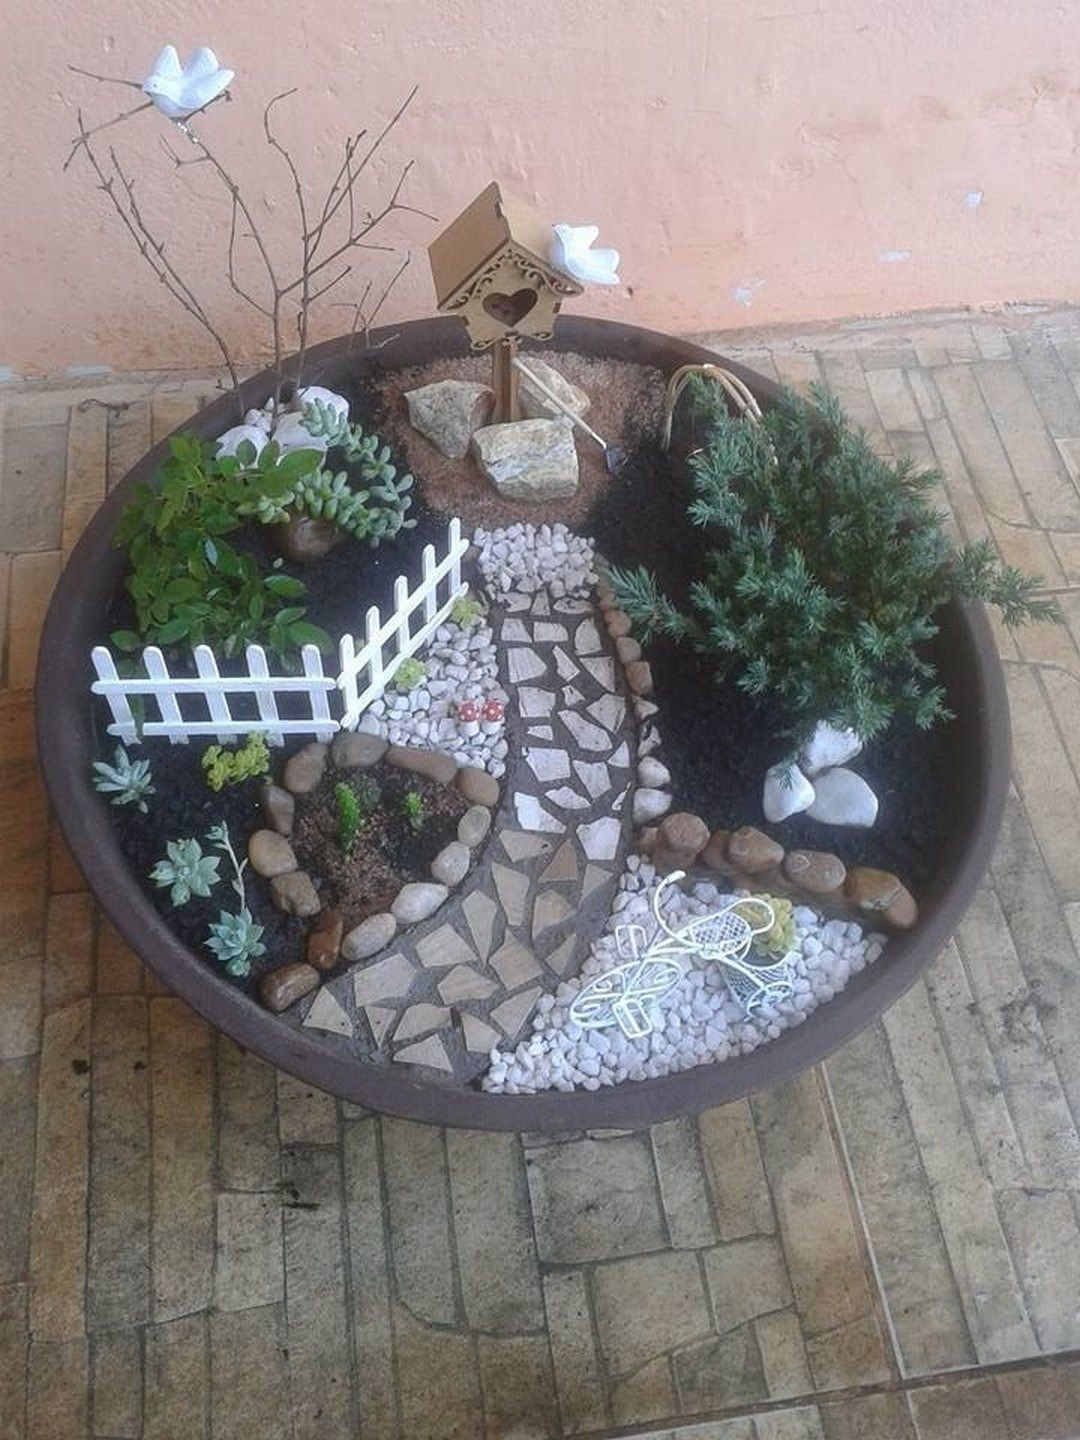 53 do it yourself fairy garden ideas for kids 43 - Fairy garden diy, Fairy garden designs, Fairy garden, Miniature fairy gardens, Mini fairy garden, Fairy garden accessories -  53 do it yourself fairy garden ideas for kids 43 Related